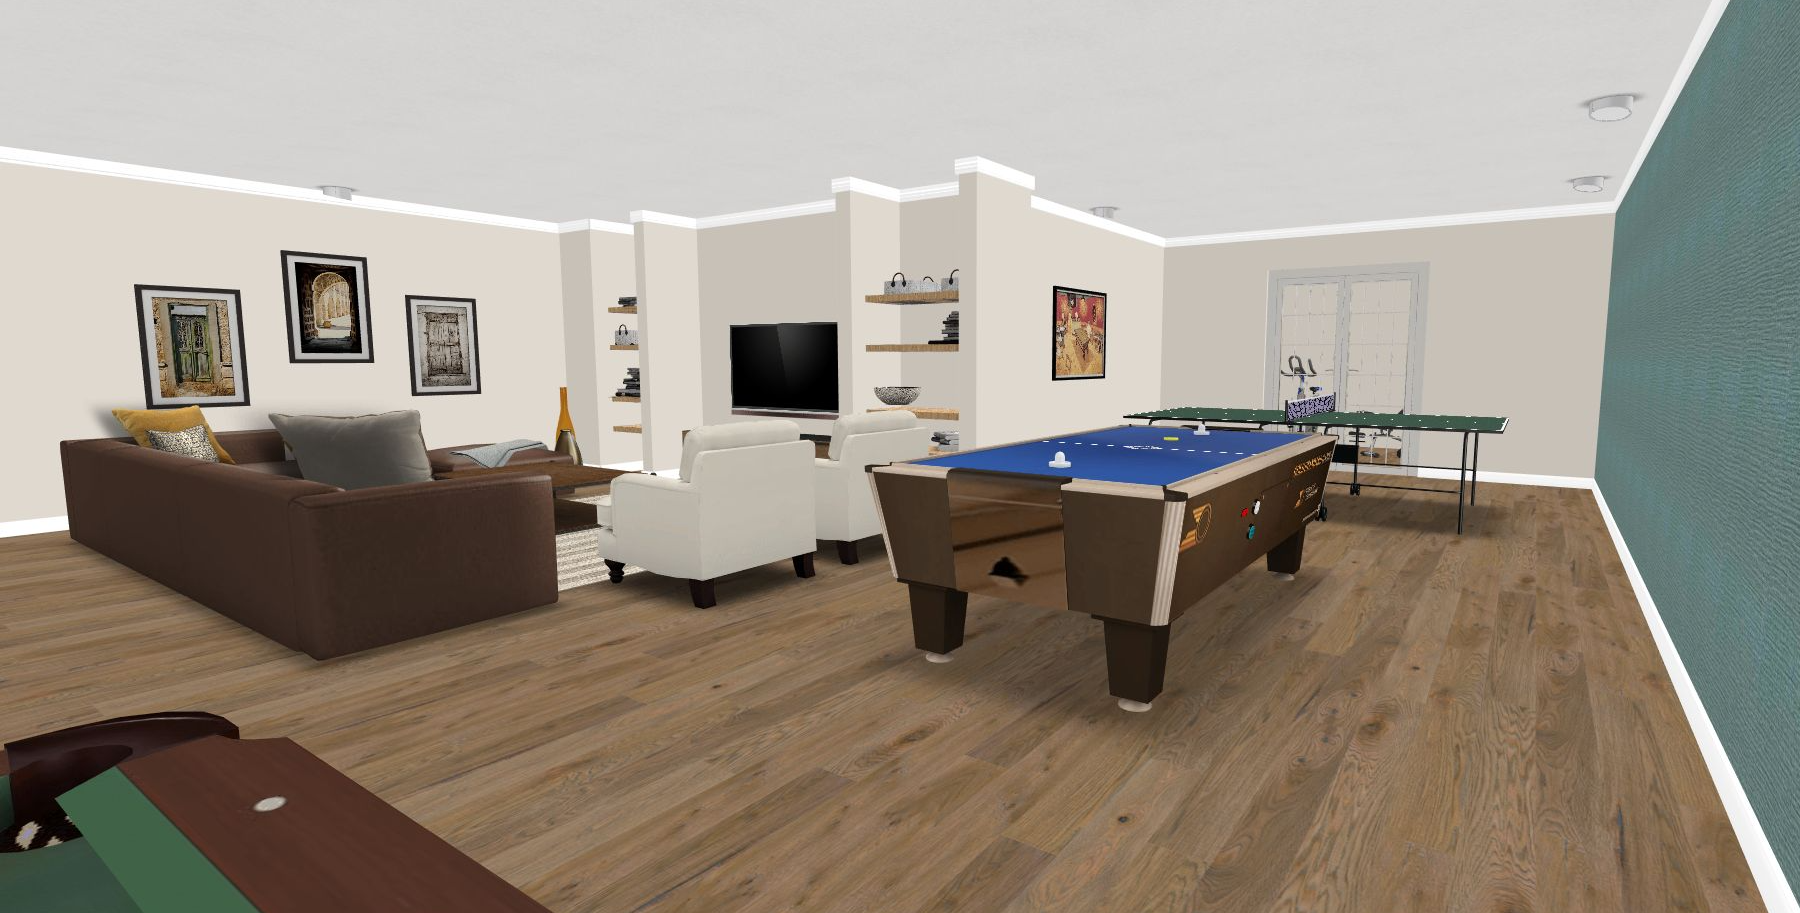 Kaoud Basement Interior Rendering - 2.png